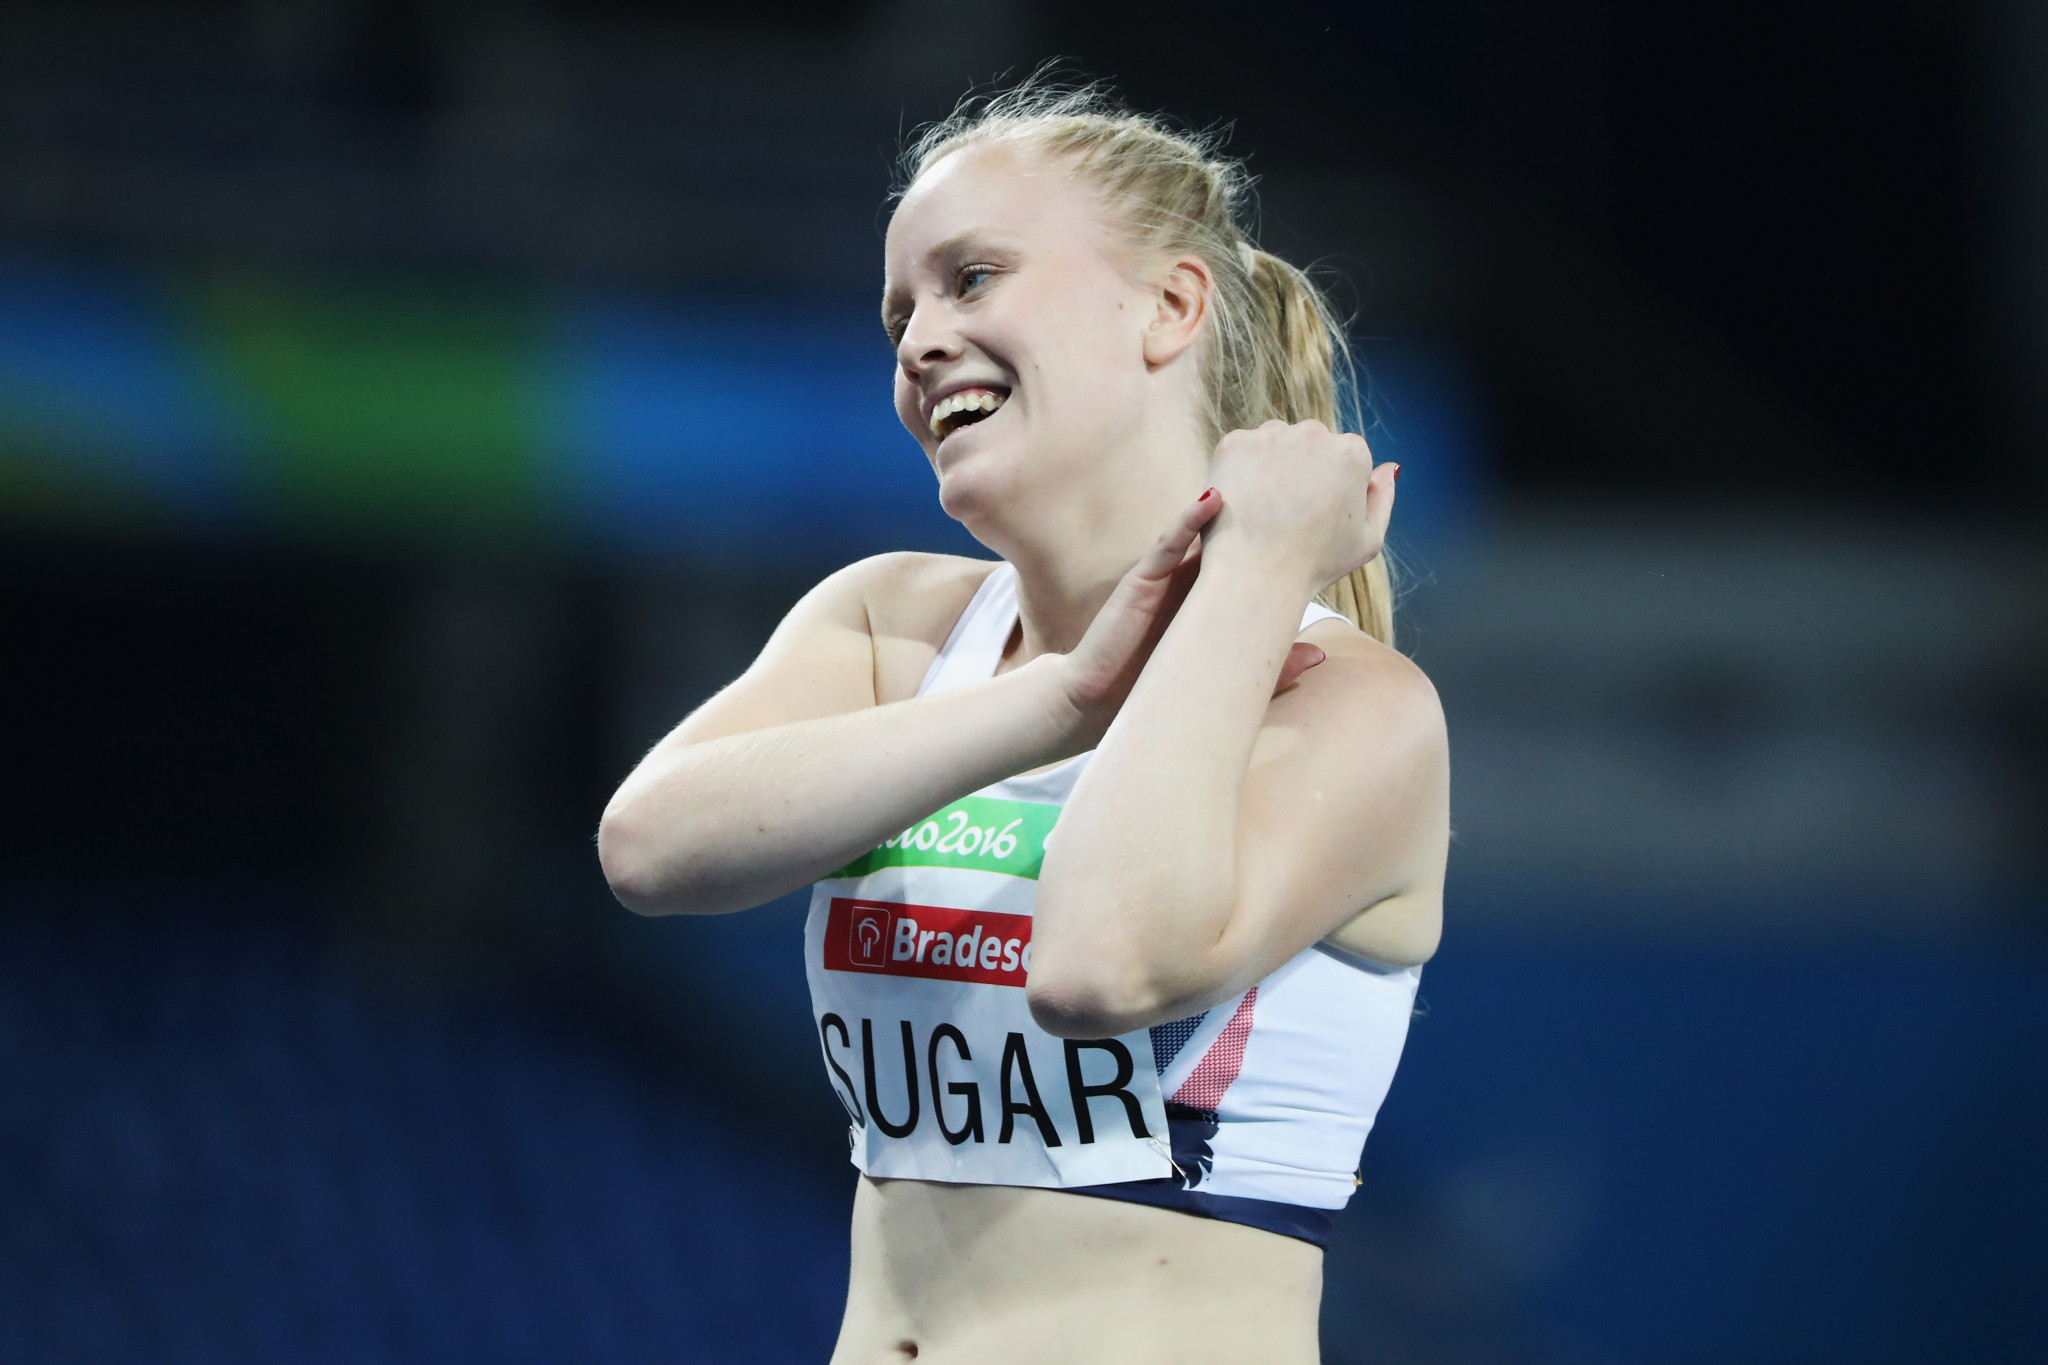 Laura Sugar represented Britain in athletics at the Rio 2016 Paralympics ©Getty Images